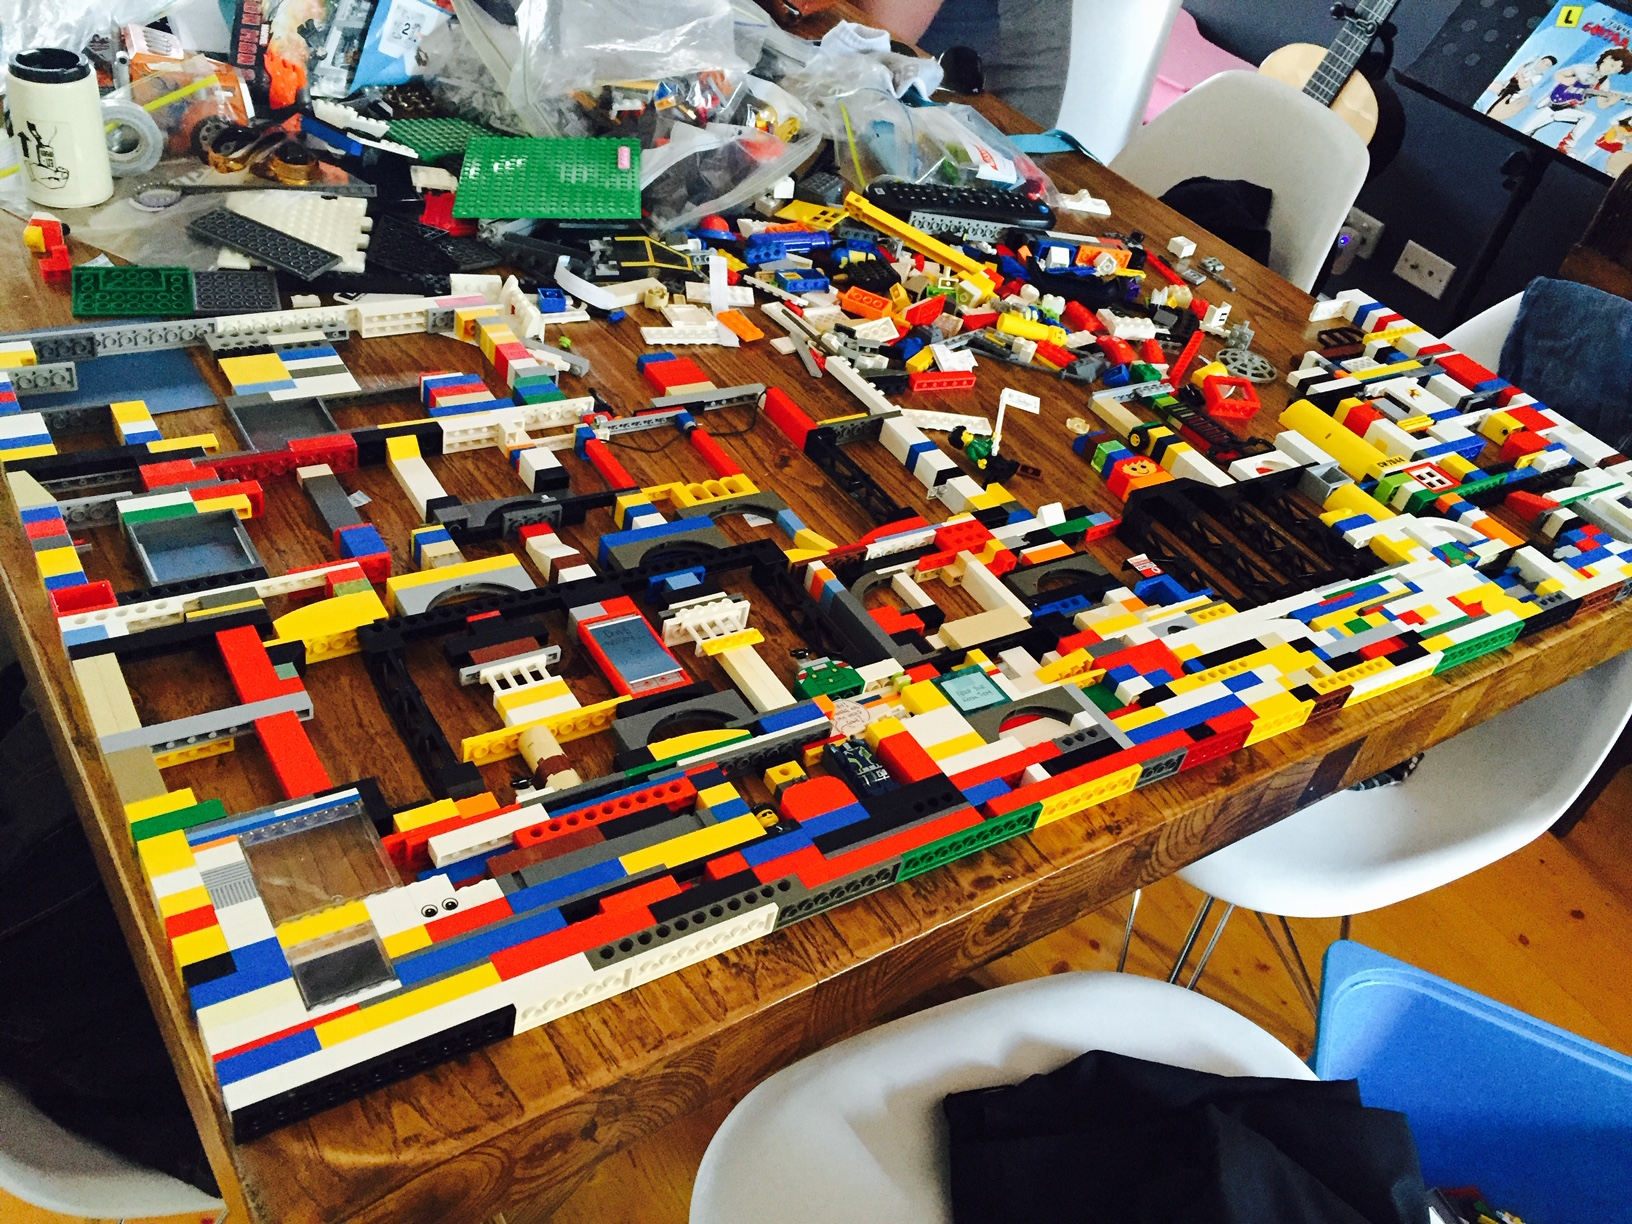 Lego study desk in the making